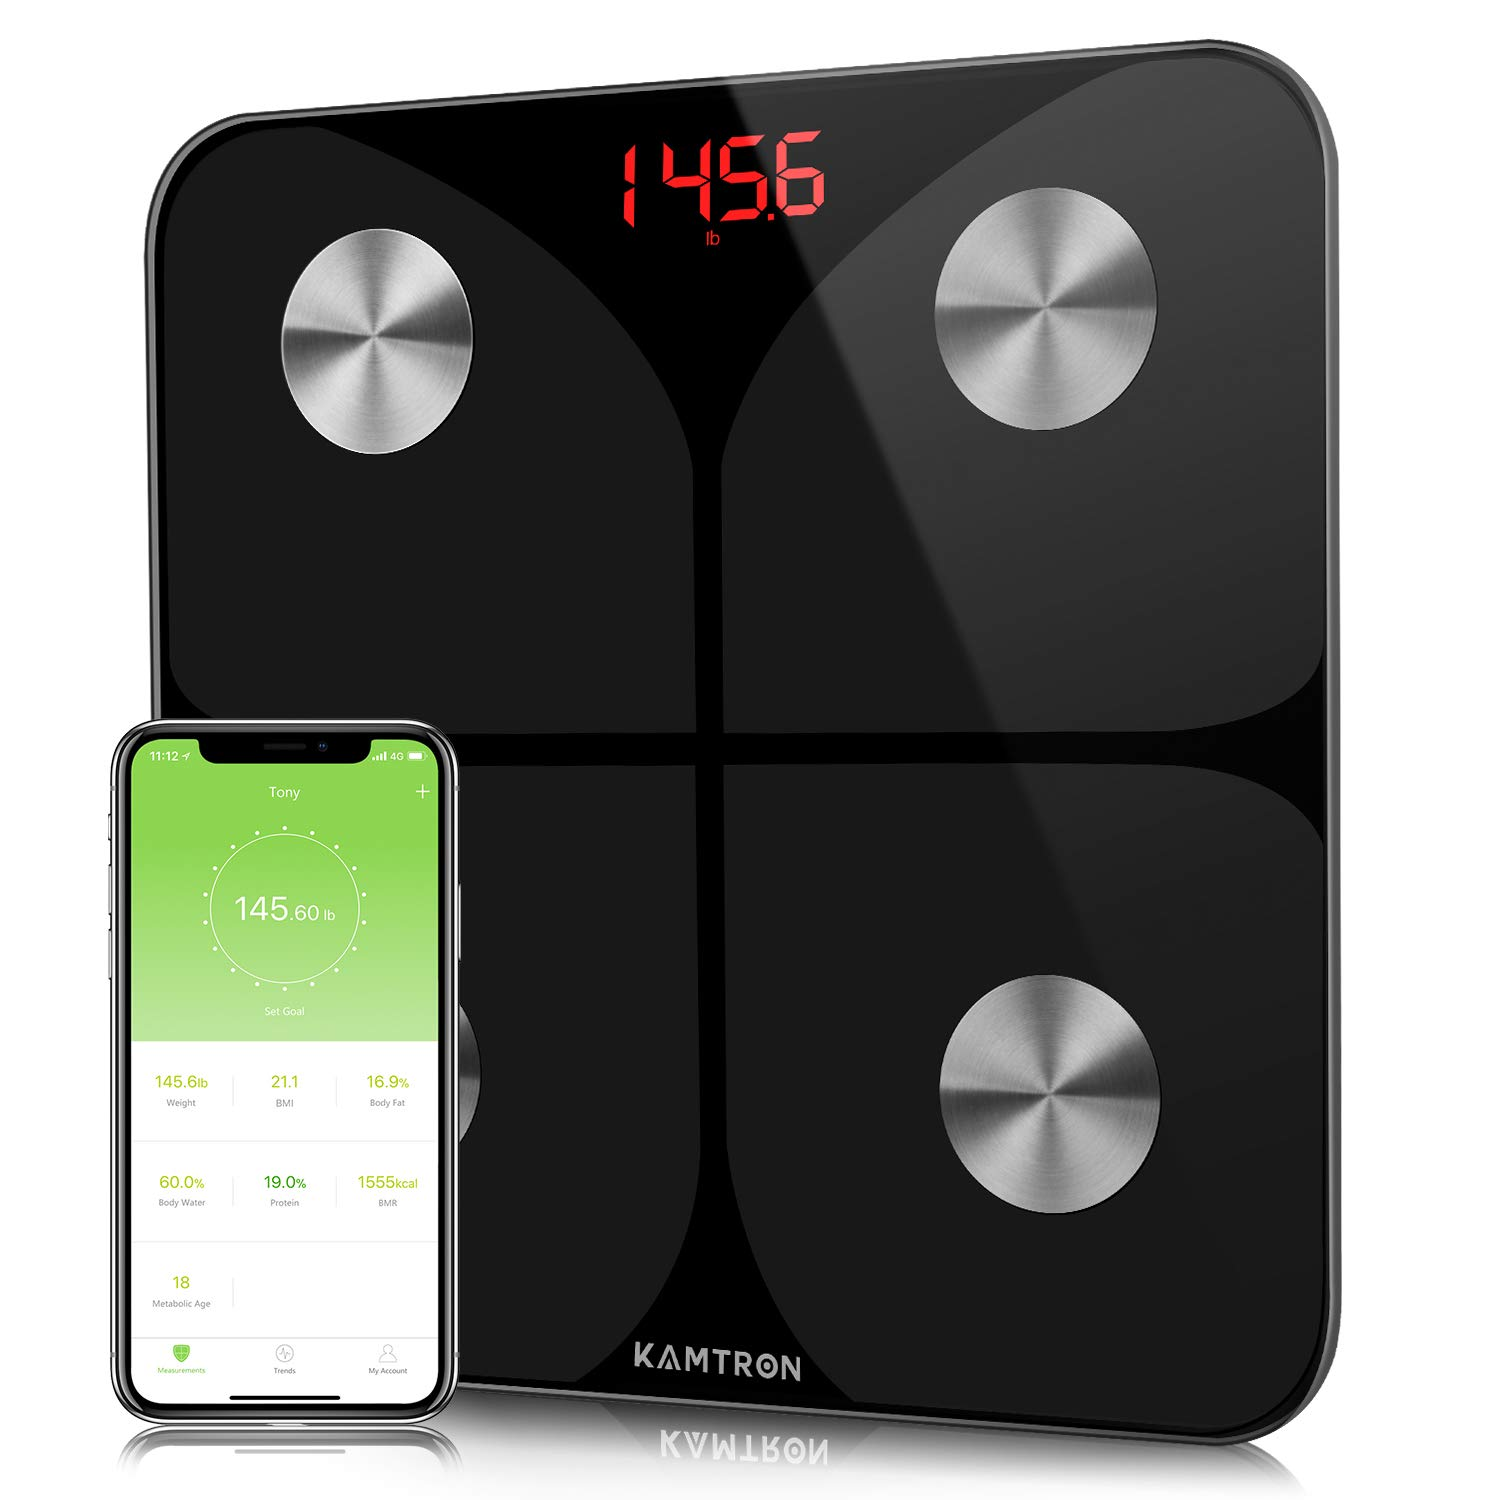 KAMTRON Smart Body Fat Scales - Bathroom Scales Body Composition Analyzer  Monitor, High Precision Measuring for BMI, Visceral Fat, Muscle, Body Age